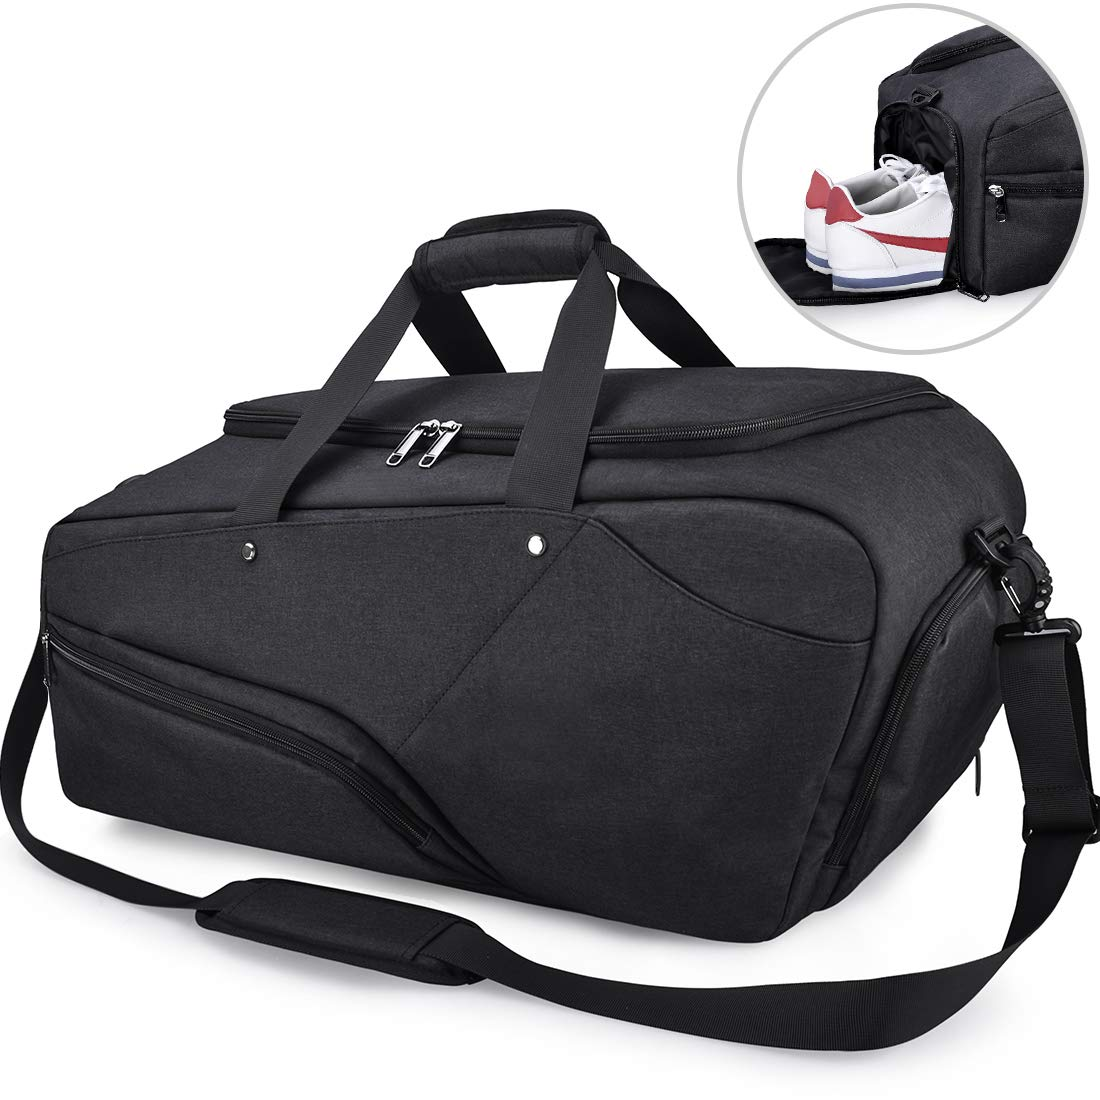 6999c0369420f5 Amazon.com | Gym Bag Sports Duffle Bag with Shoes Compartment Waterproof  Large Travel Duffel Bags Weekender Overnight Bag for Men Women 45L Black |  Sports ...